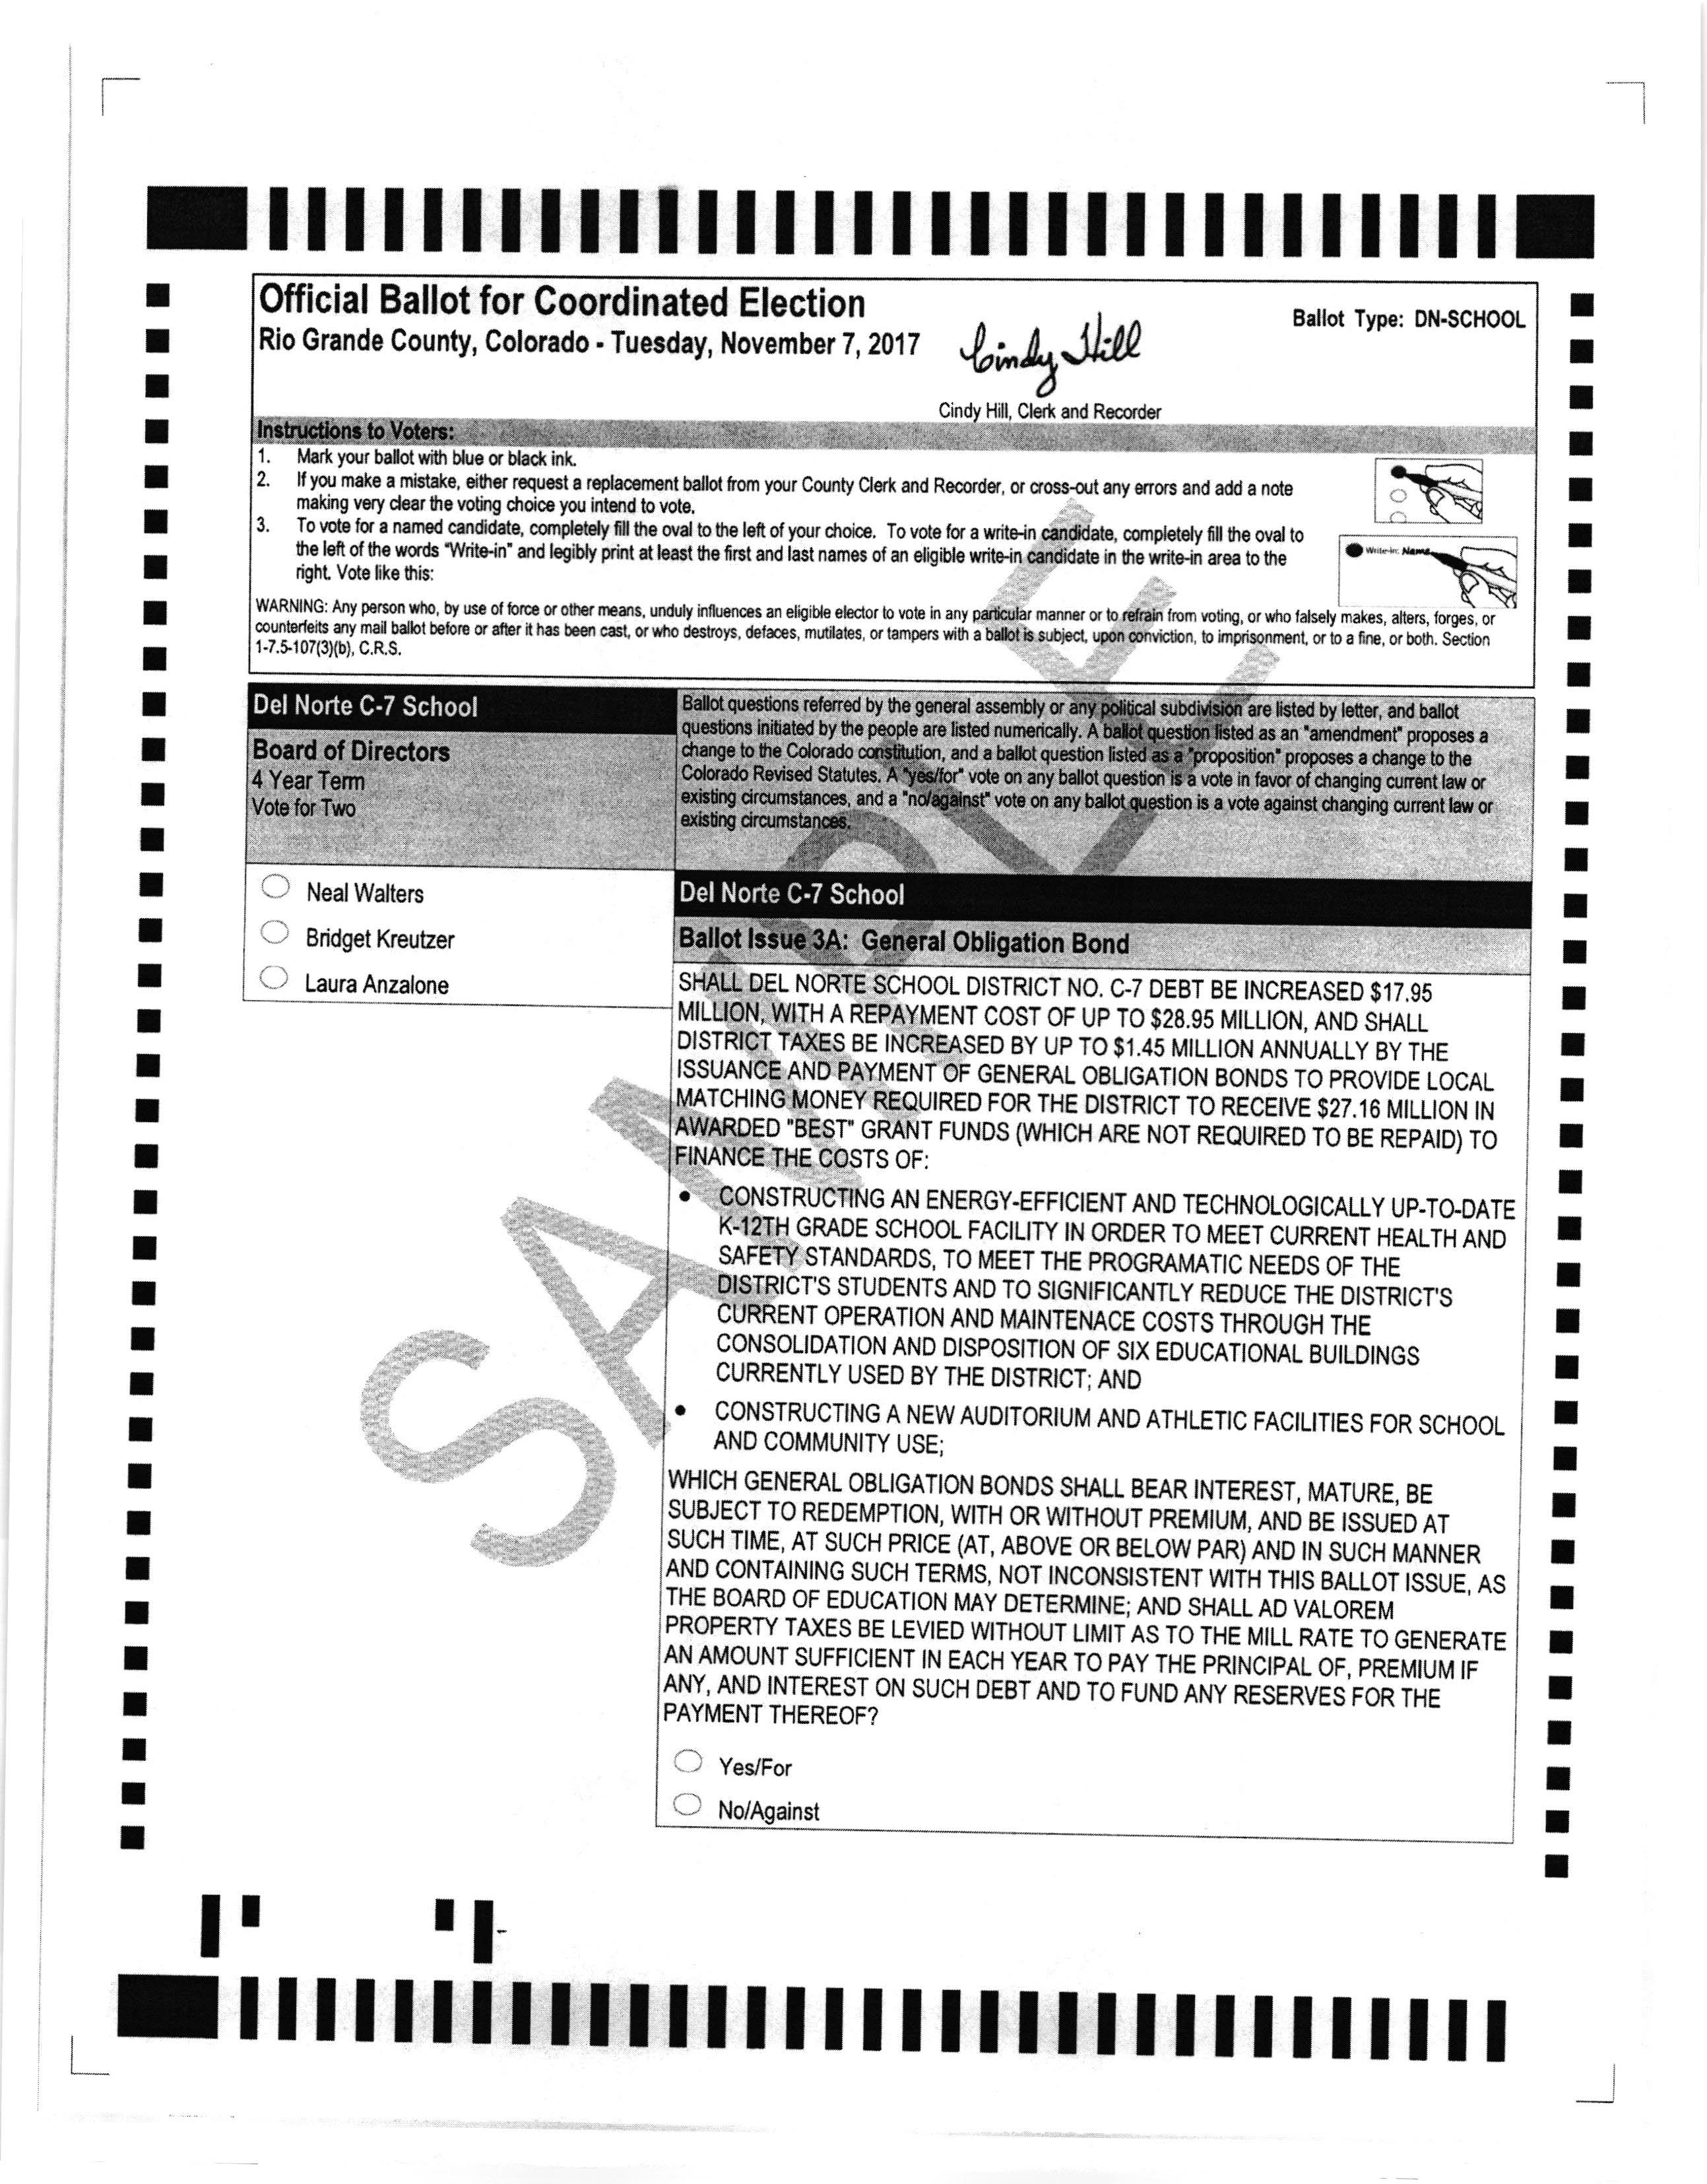 Del Norte School Sample Ballot